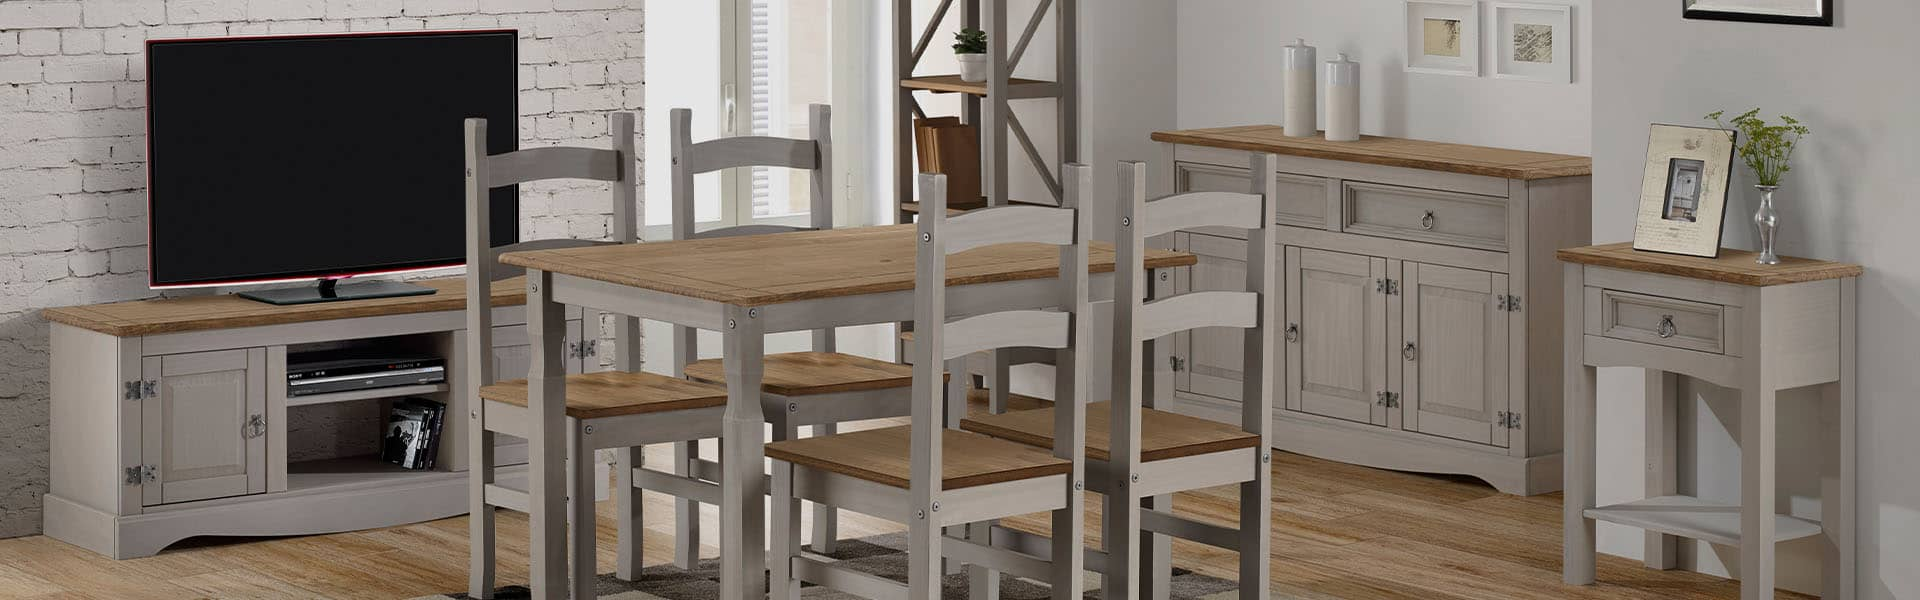 Order from home - Steptoes - Furniture - Dining - Living - Lounge - Bedroom - Occasional - Garden - Home Accessories - Interior - Design - Paphos - Cyprus